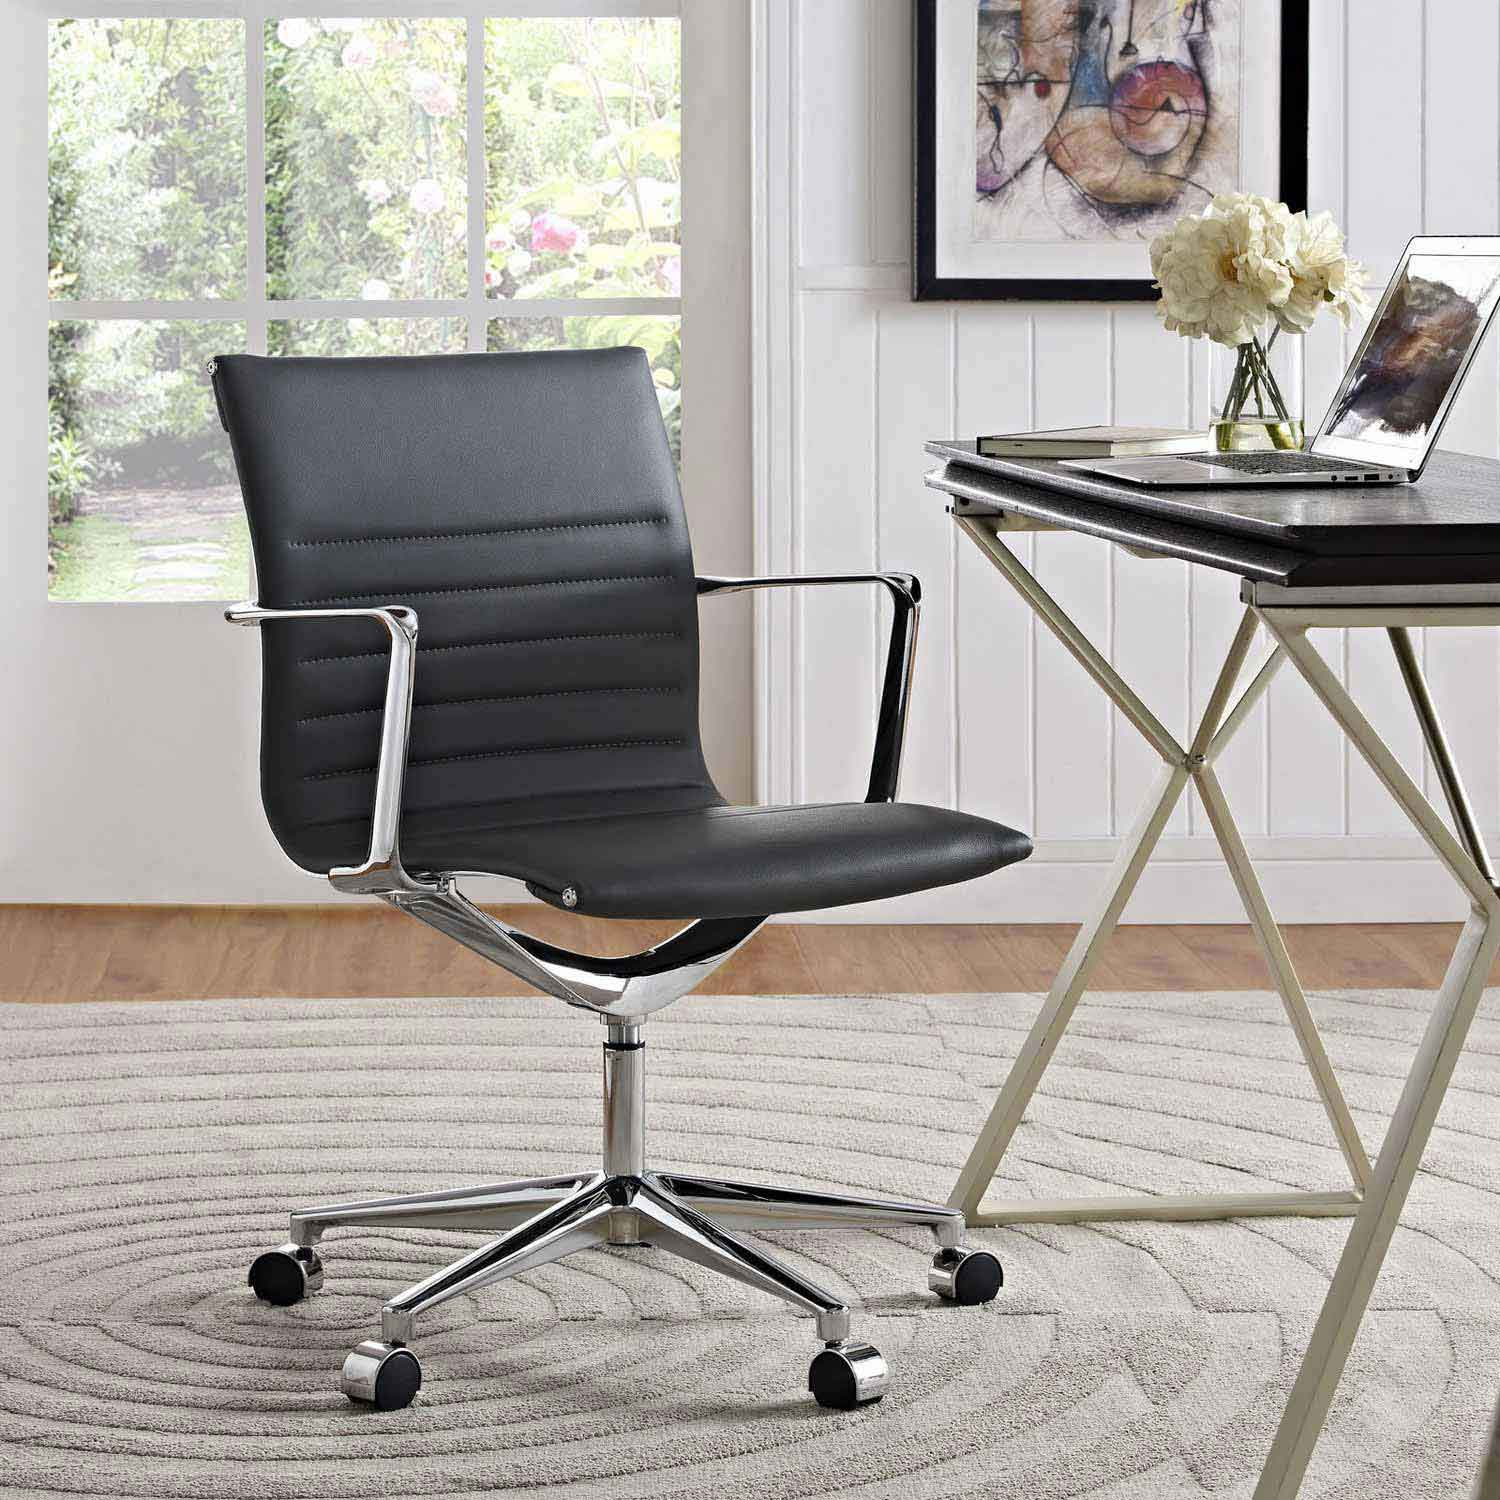 Modway Vi Mid Back fice Chair Gray MW EEI 1526 GRY at